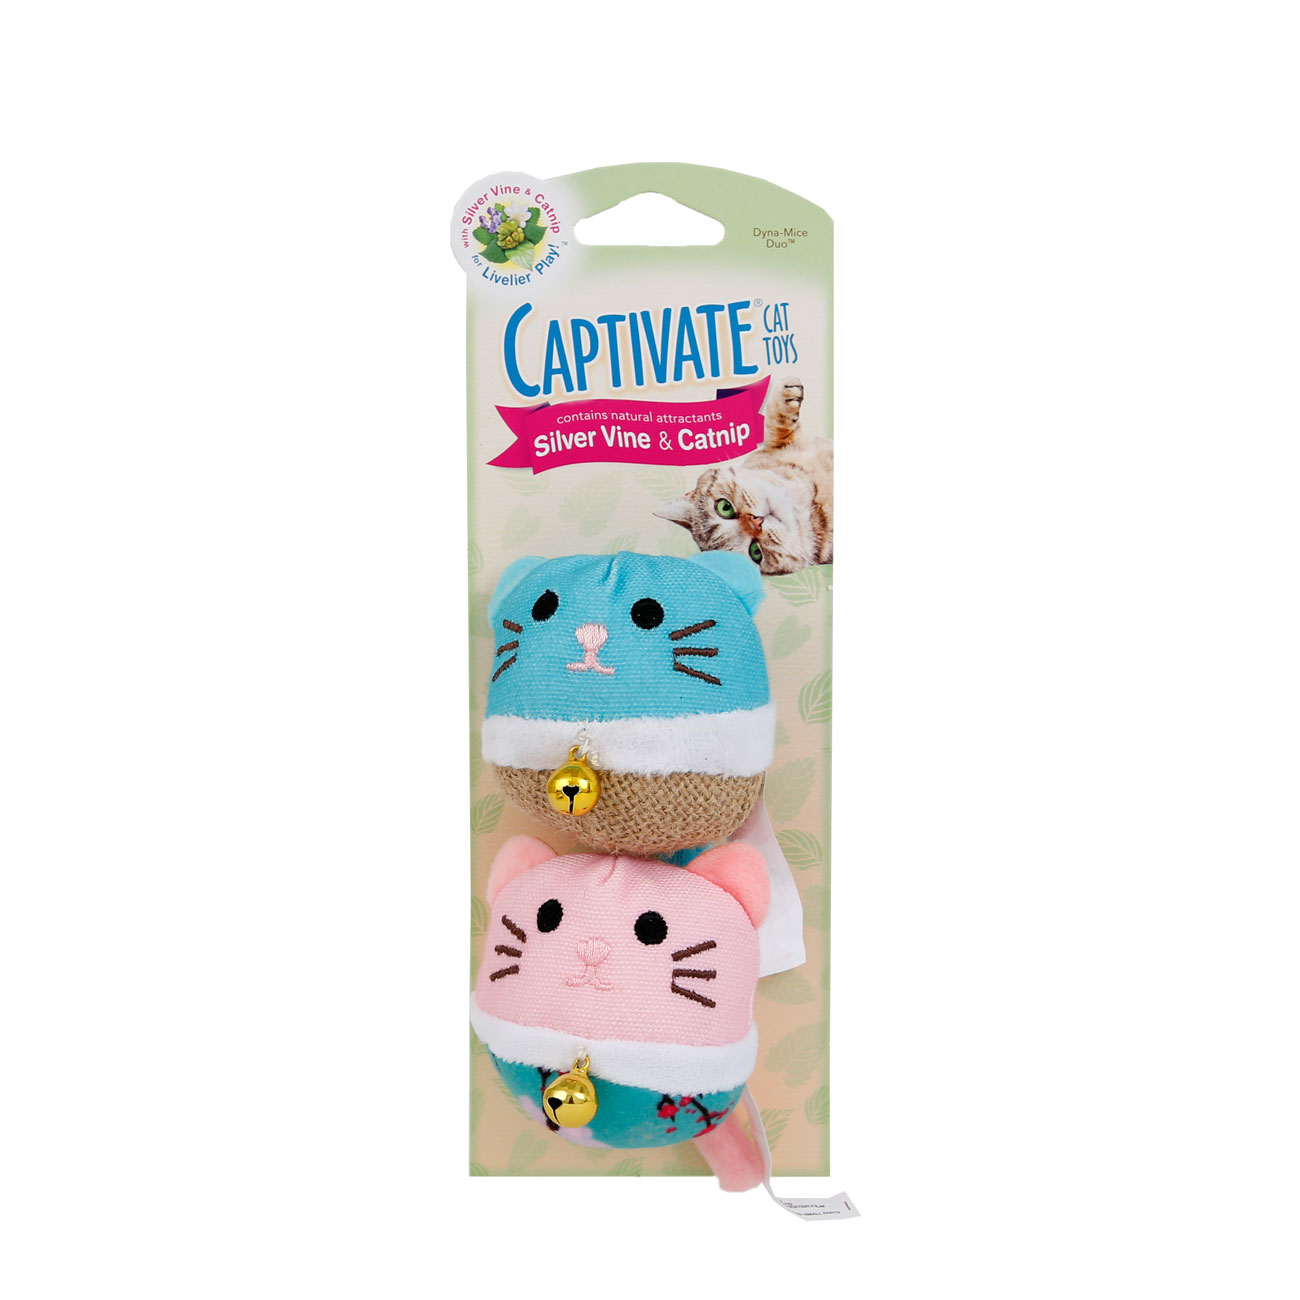 Hartz captivate cat toy with silver vine and catnip. Front of package. Hartz SKU# 3270011258